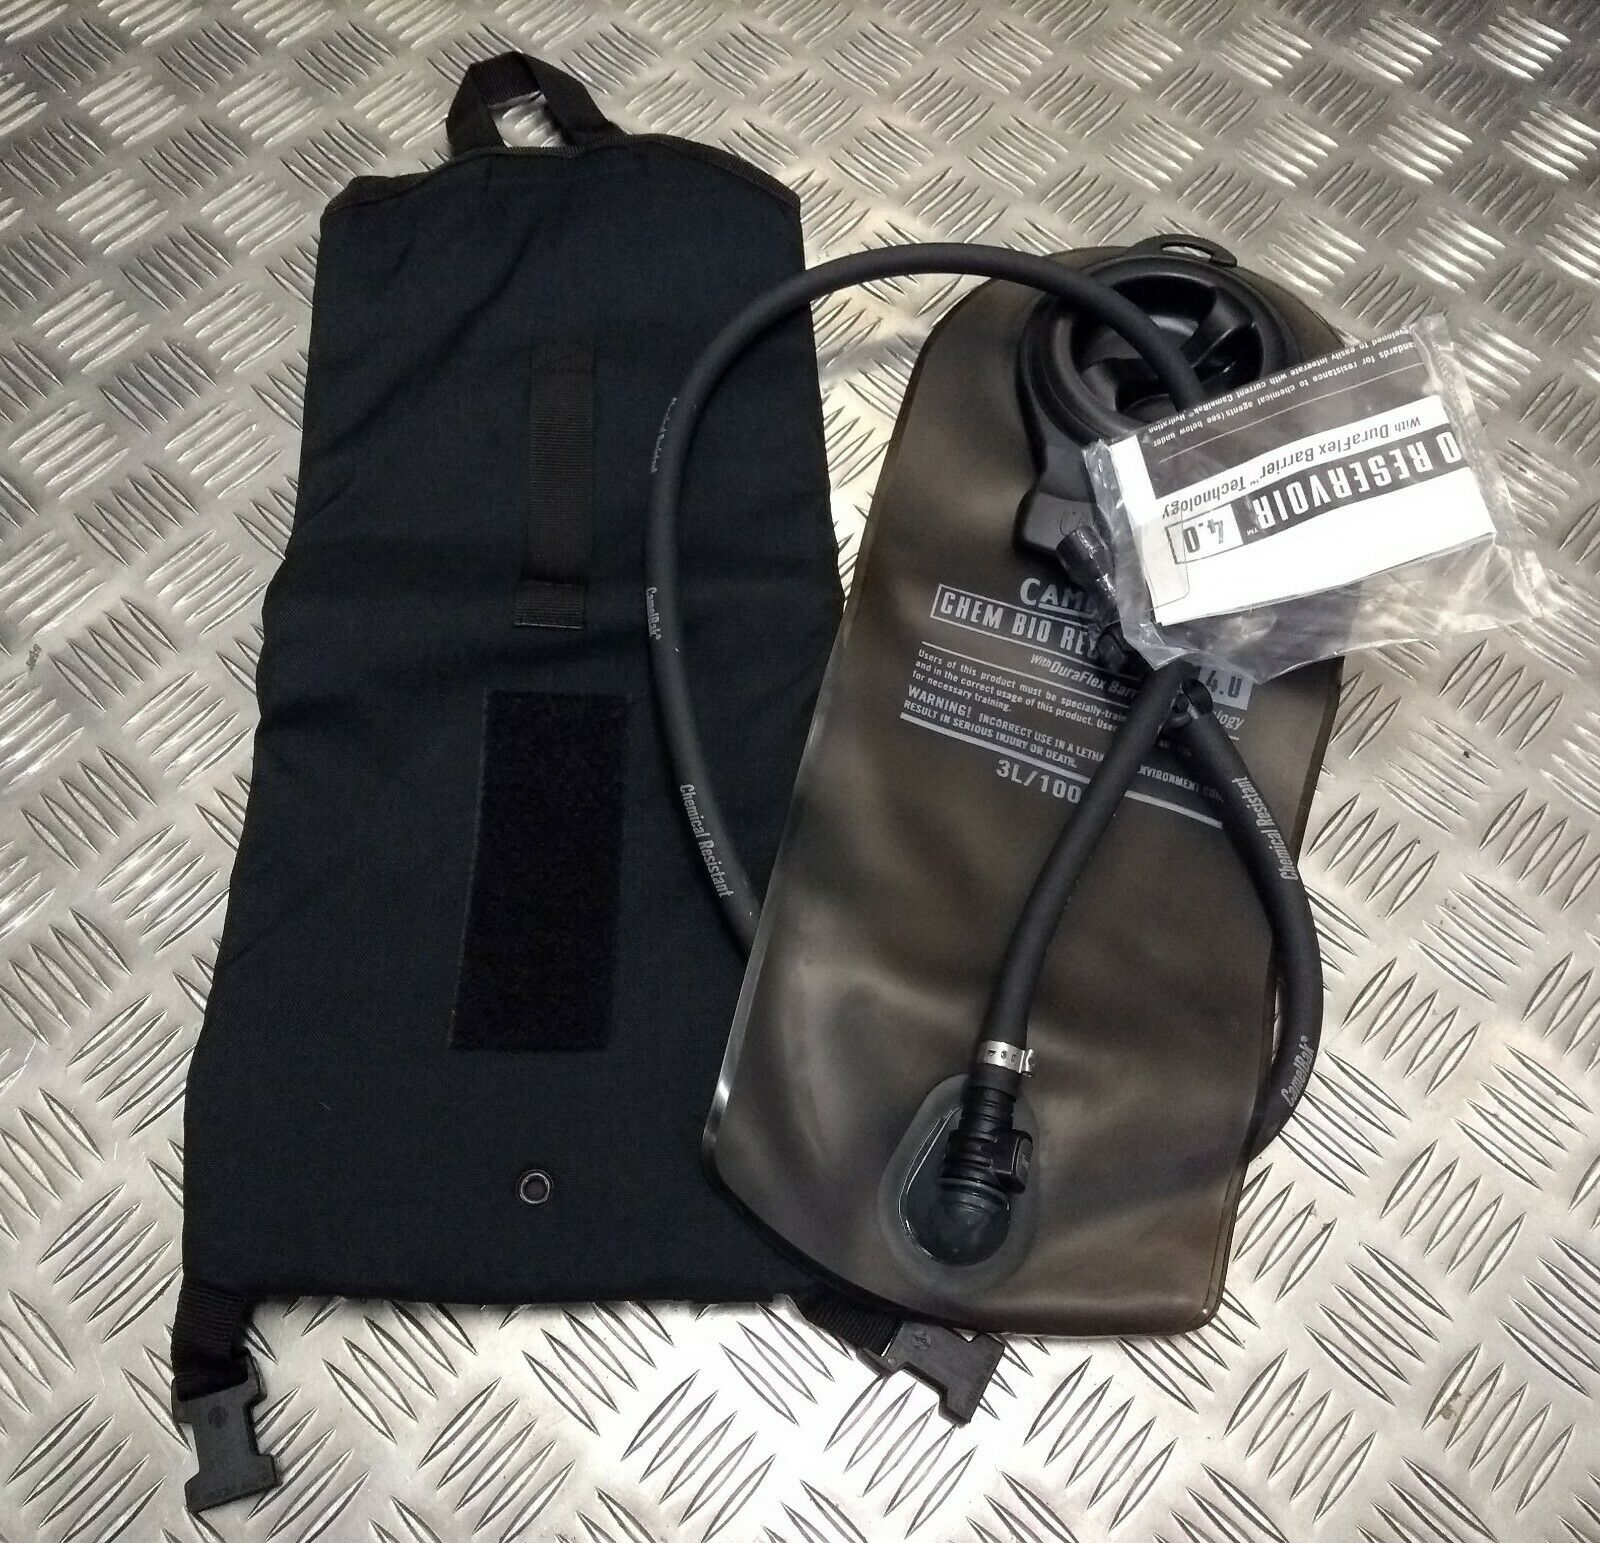 Genuine British Military Police Special Forces Issue Camelbak  Bag & Bladder NEW  big savings